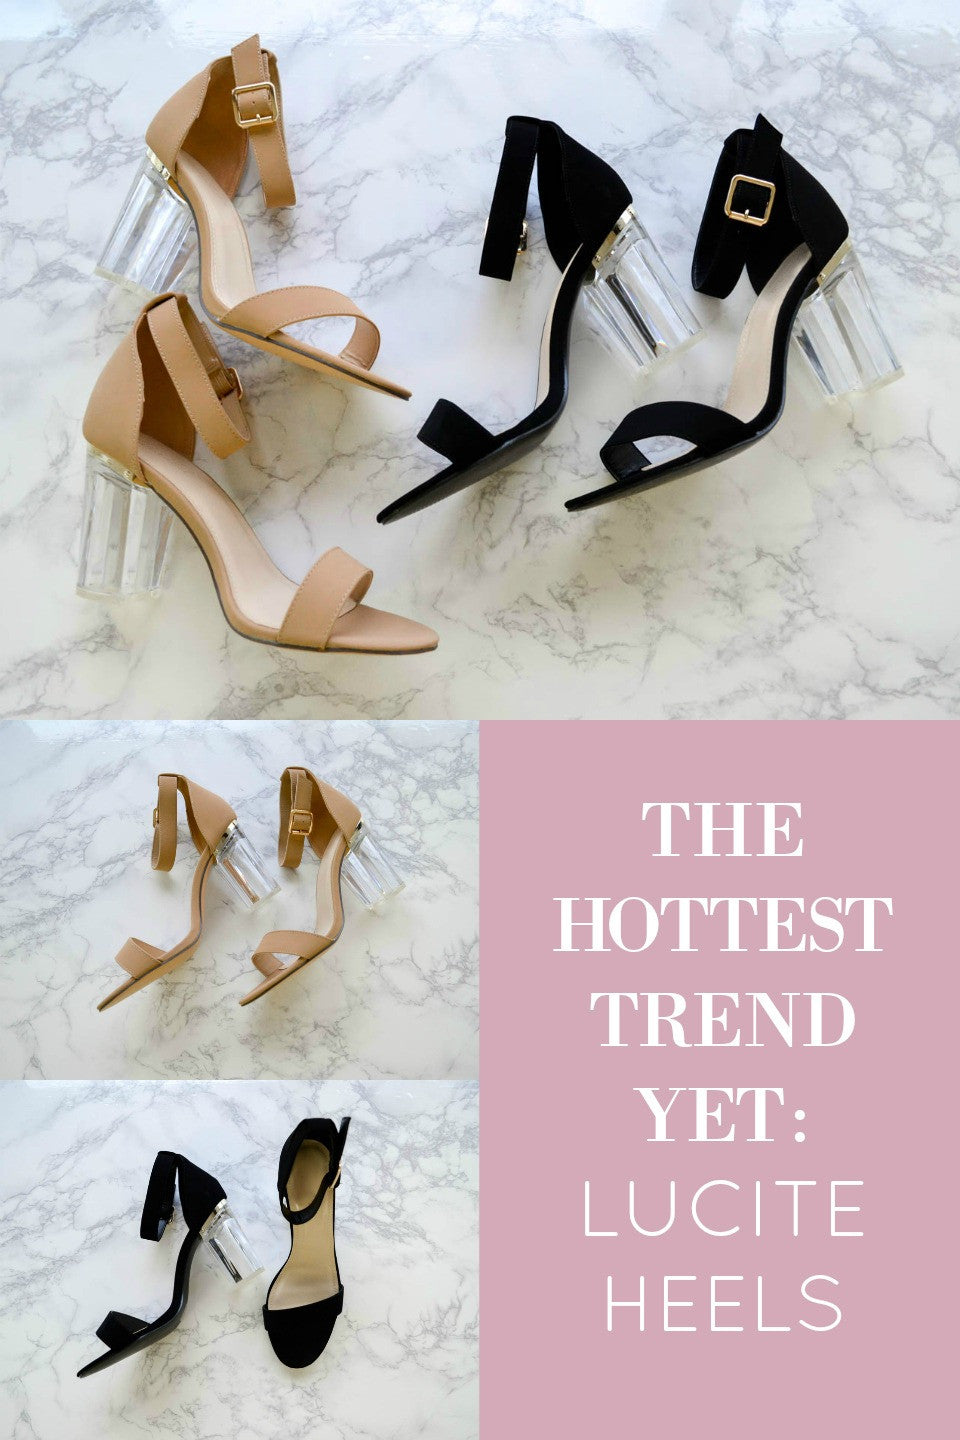 The Hottest Trend Yet: Lucite Heels